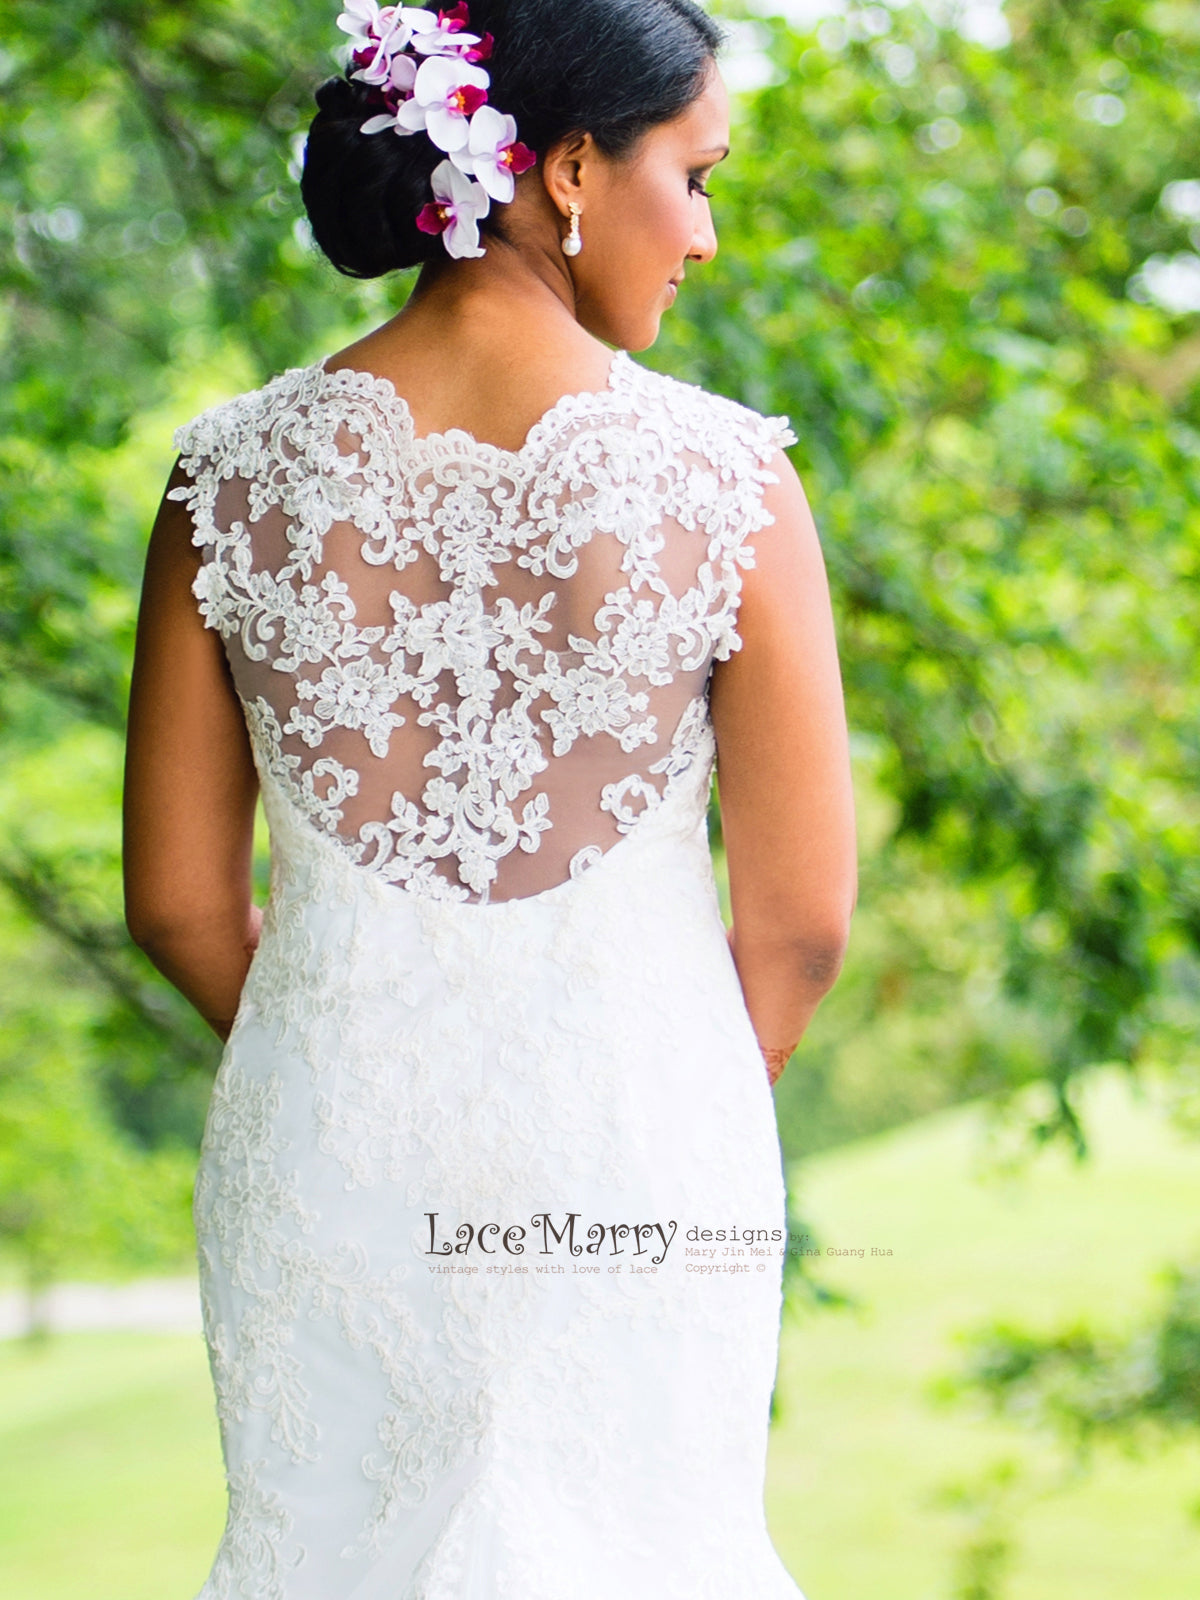 Unique Lace Wedding Dress with Dipped Illusion Neckline